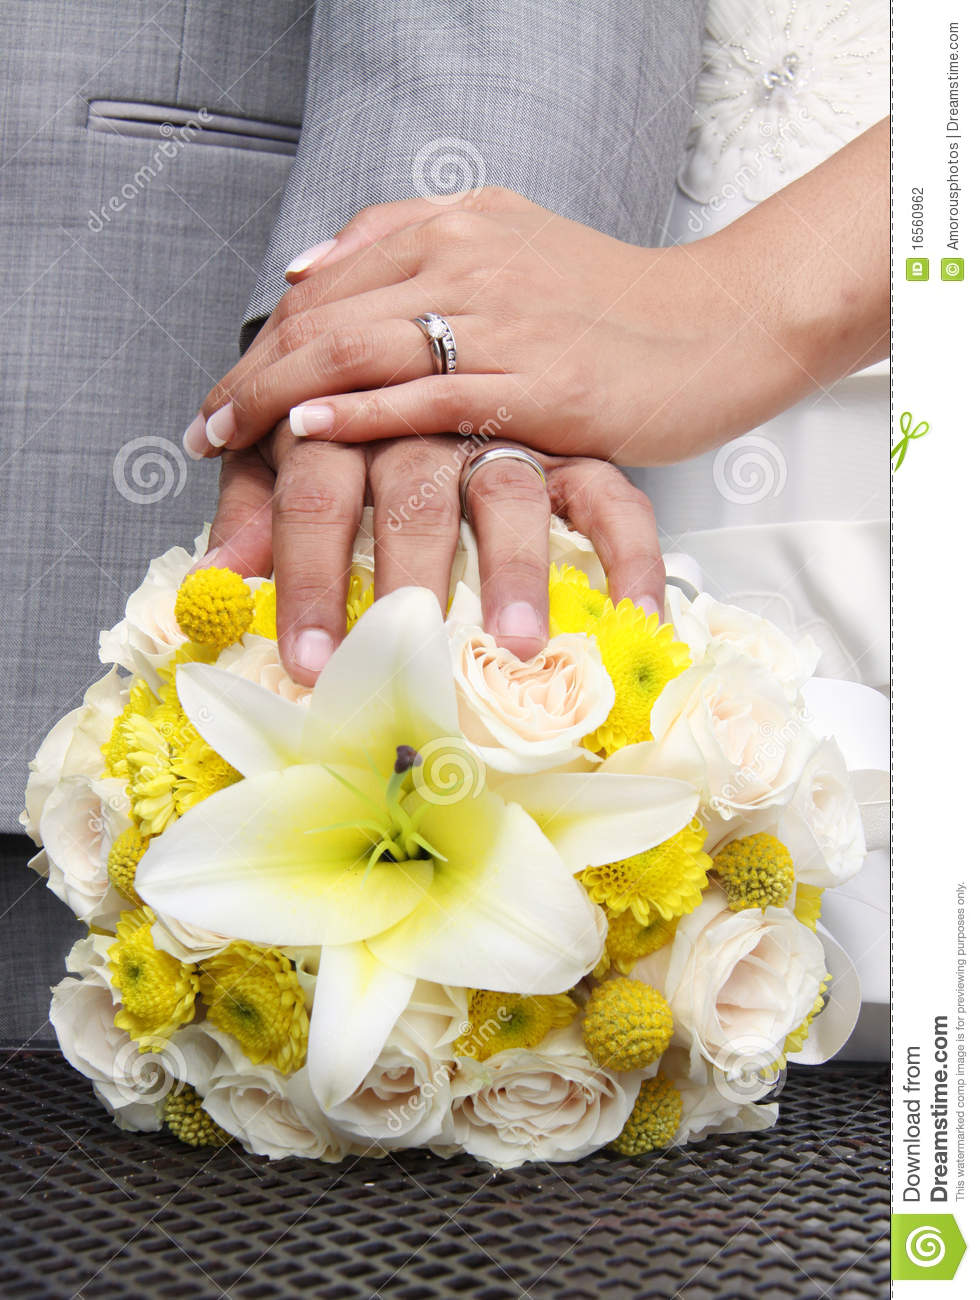 stock photography modern wedding hands rings flowers image modern wedding rings Modern Wedding hands and rings on flowers